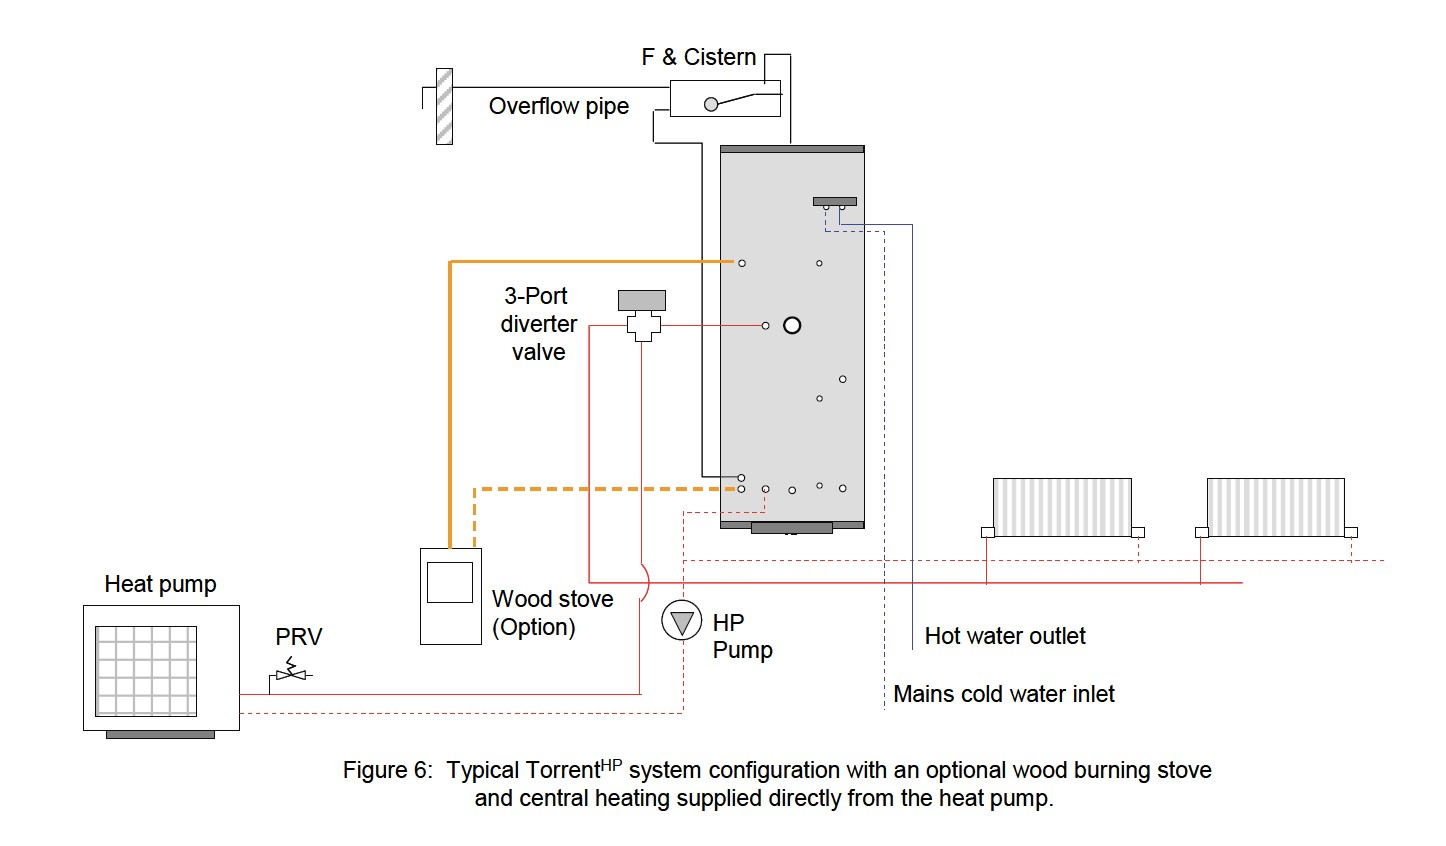 an optional wood burning stove and central heating supplied directly from the heat pump